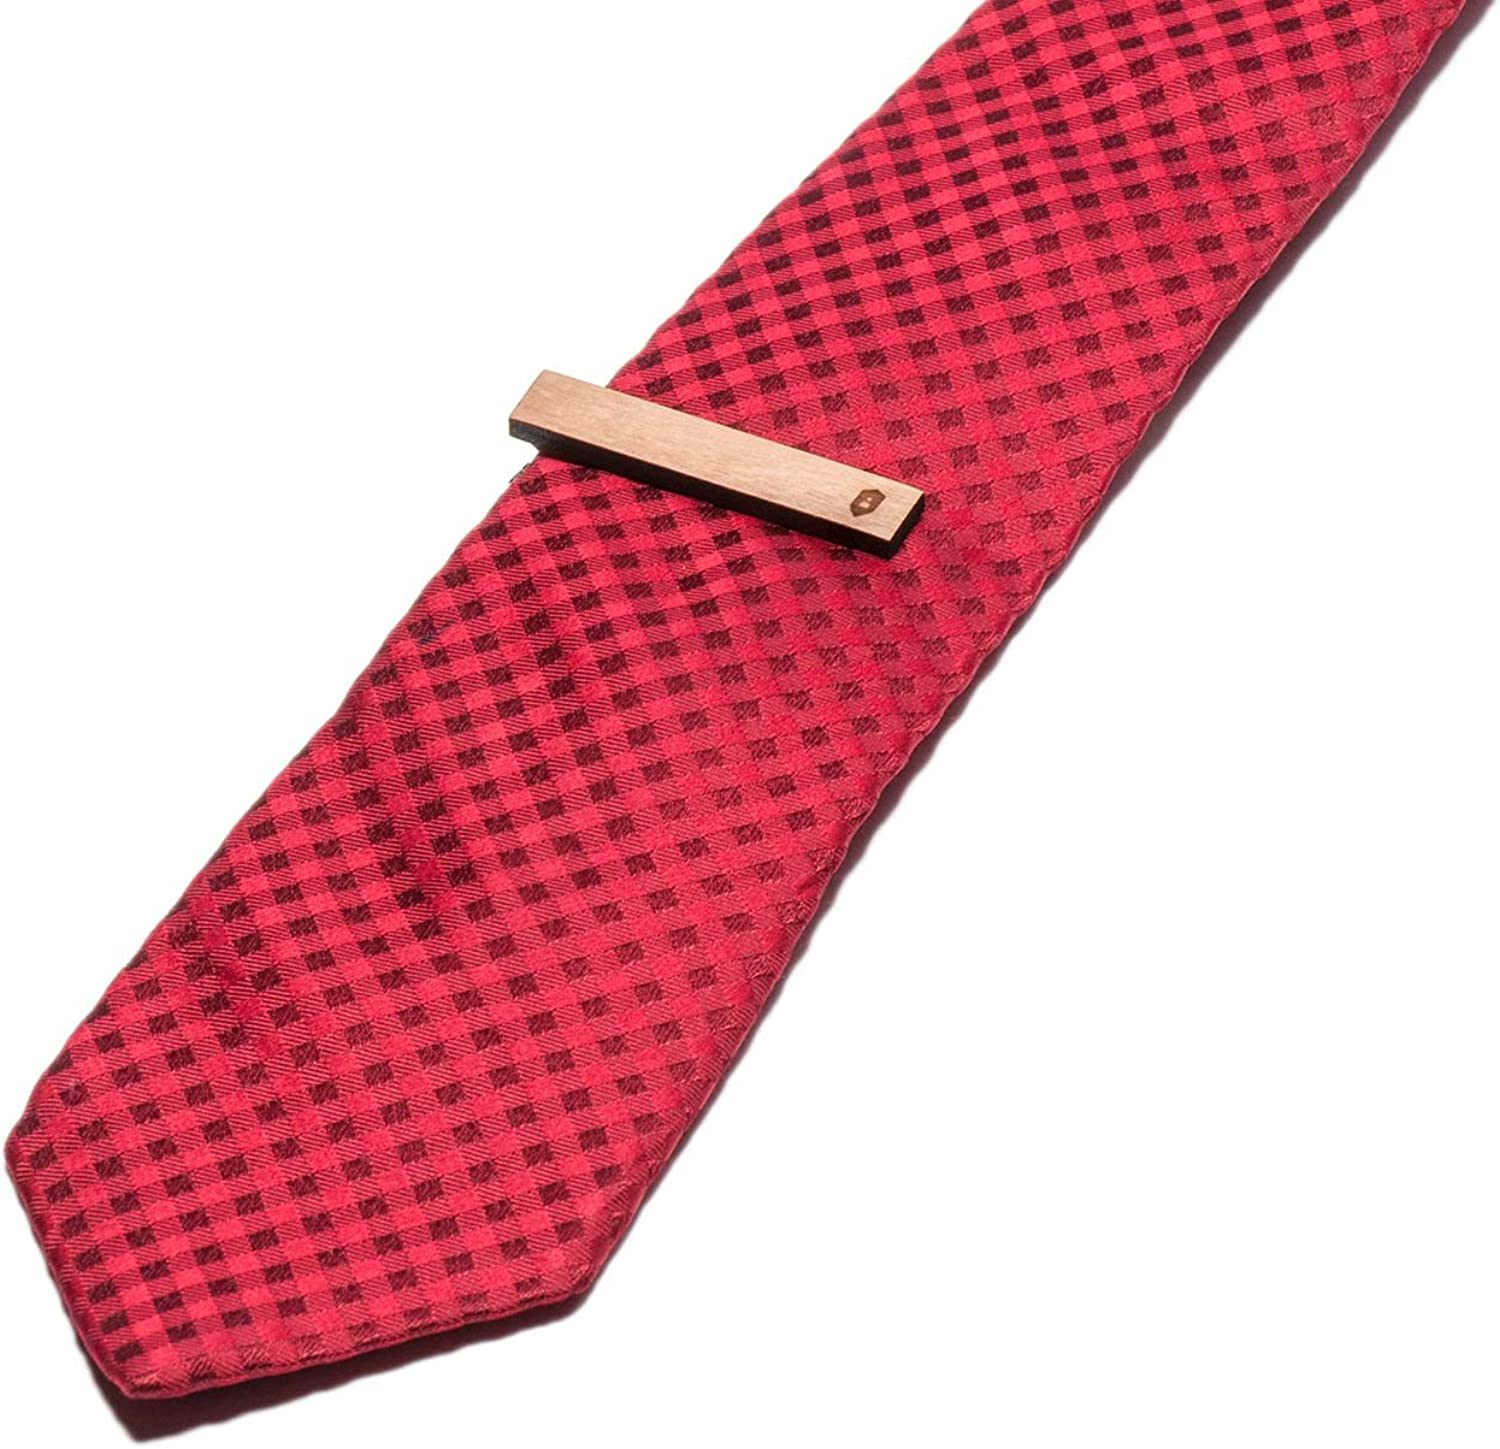 Wooden Accessories Company Wooden Tie Clips with Laser Engraved Security User Design Cherry Wood Tie Bar Engraved in The USA